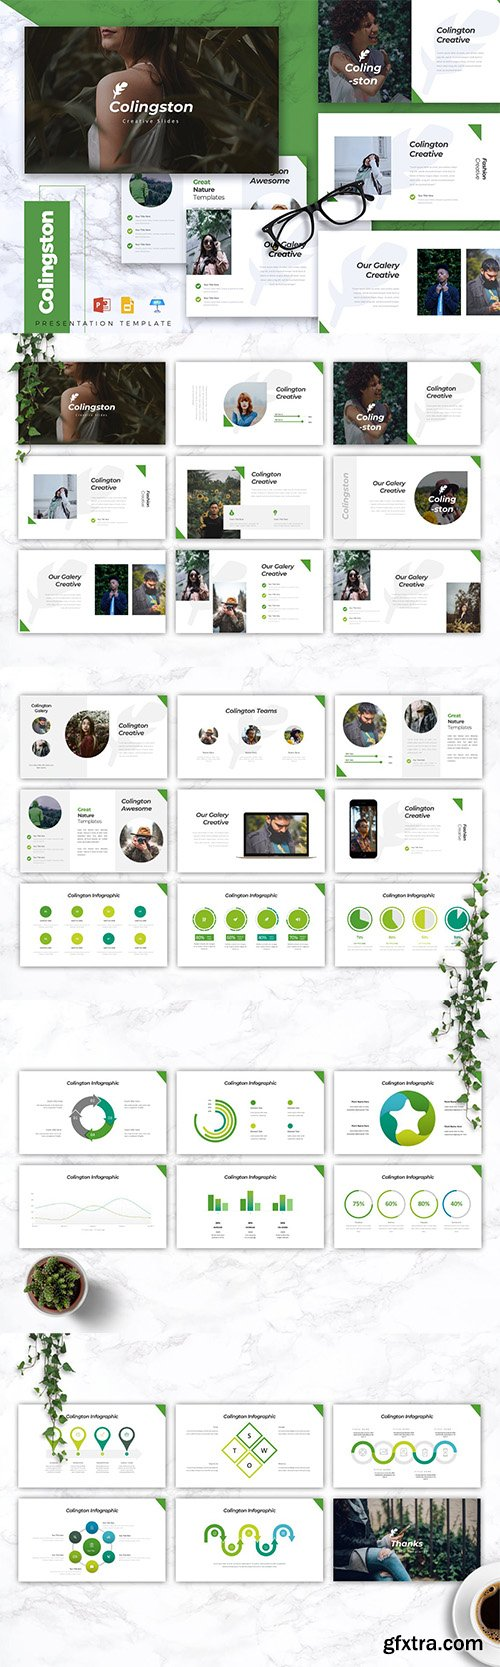 COLINGTON Creative Powerpoint/Google Slide/Keynote